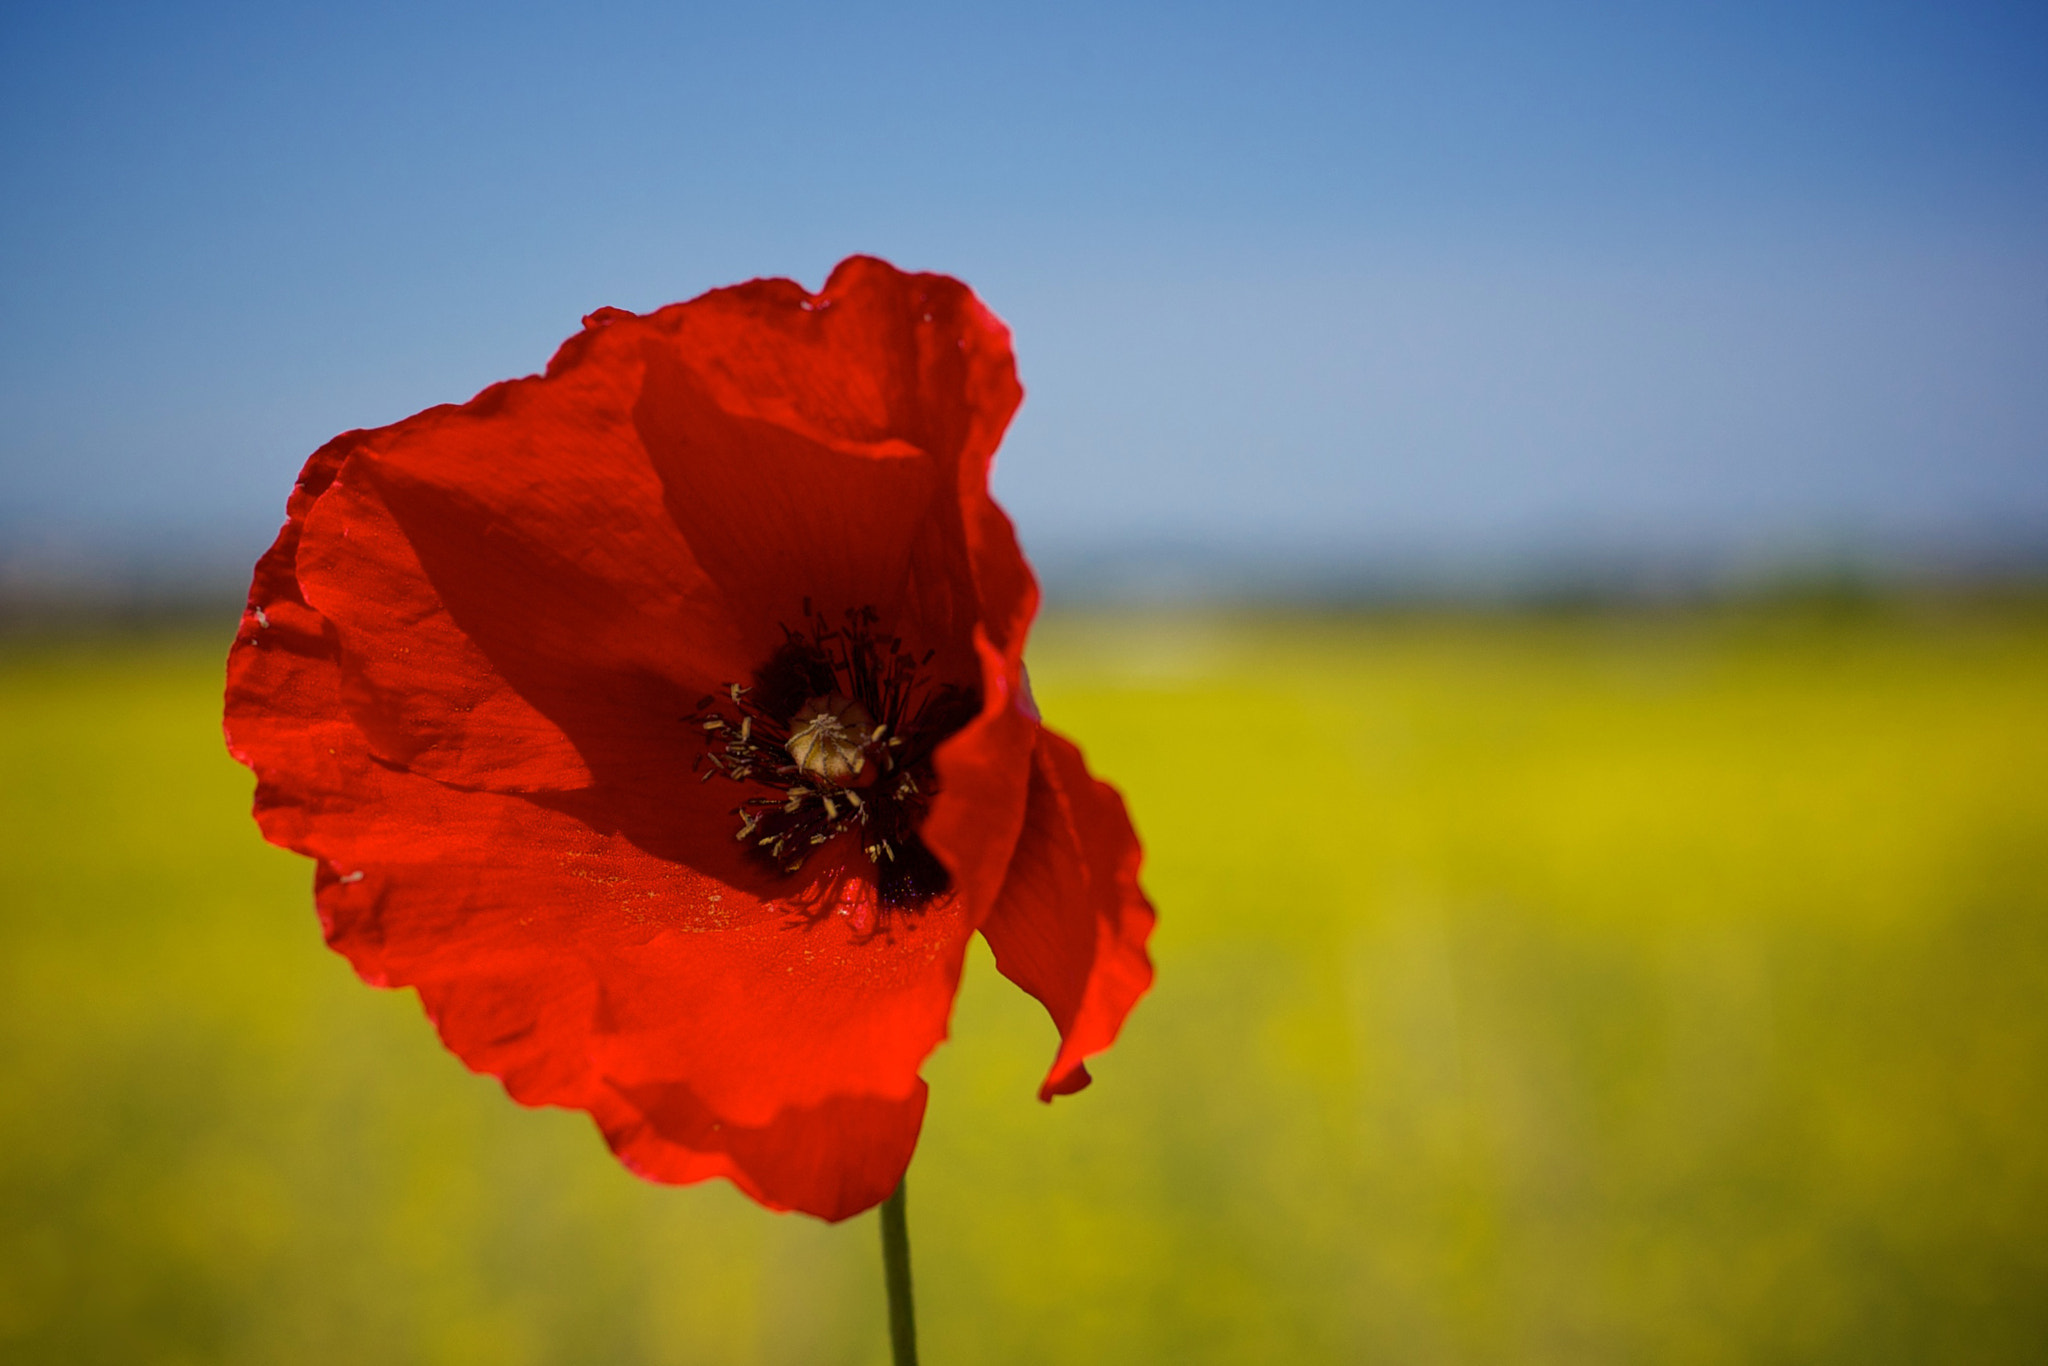 Photograph Poppy by Mariano Trissati on 500px